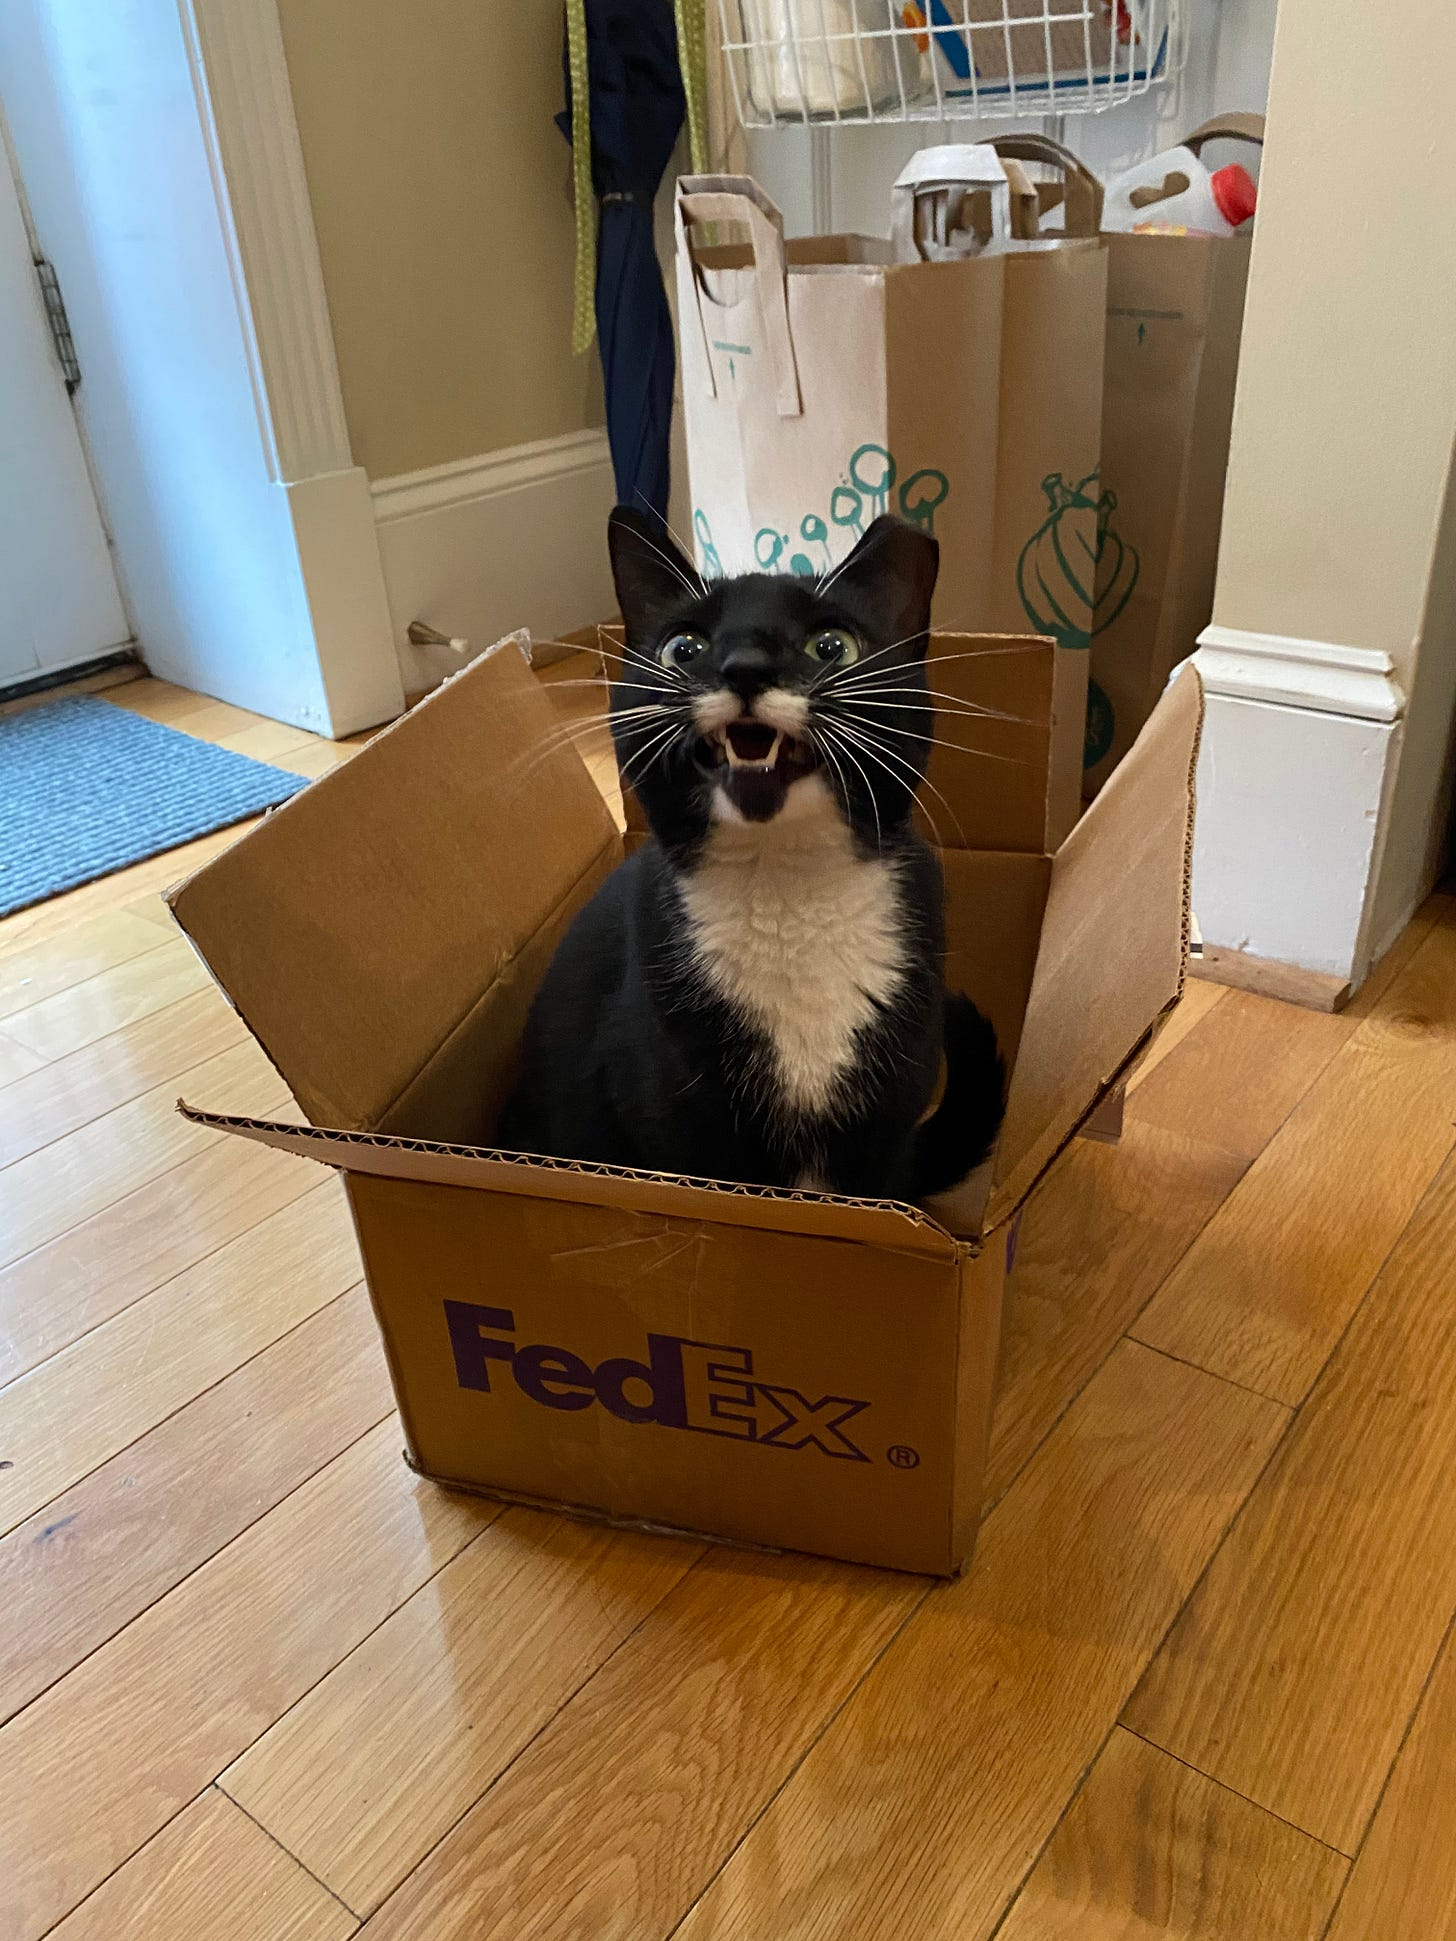 A black and white cat sits in a small box and meows at the photographer. She has little fangs.